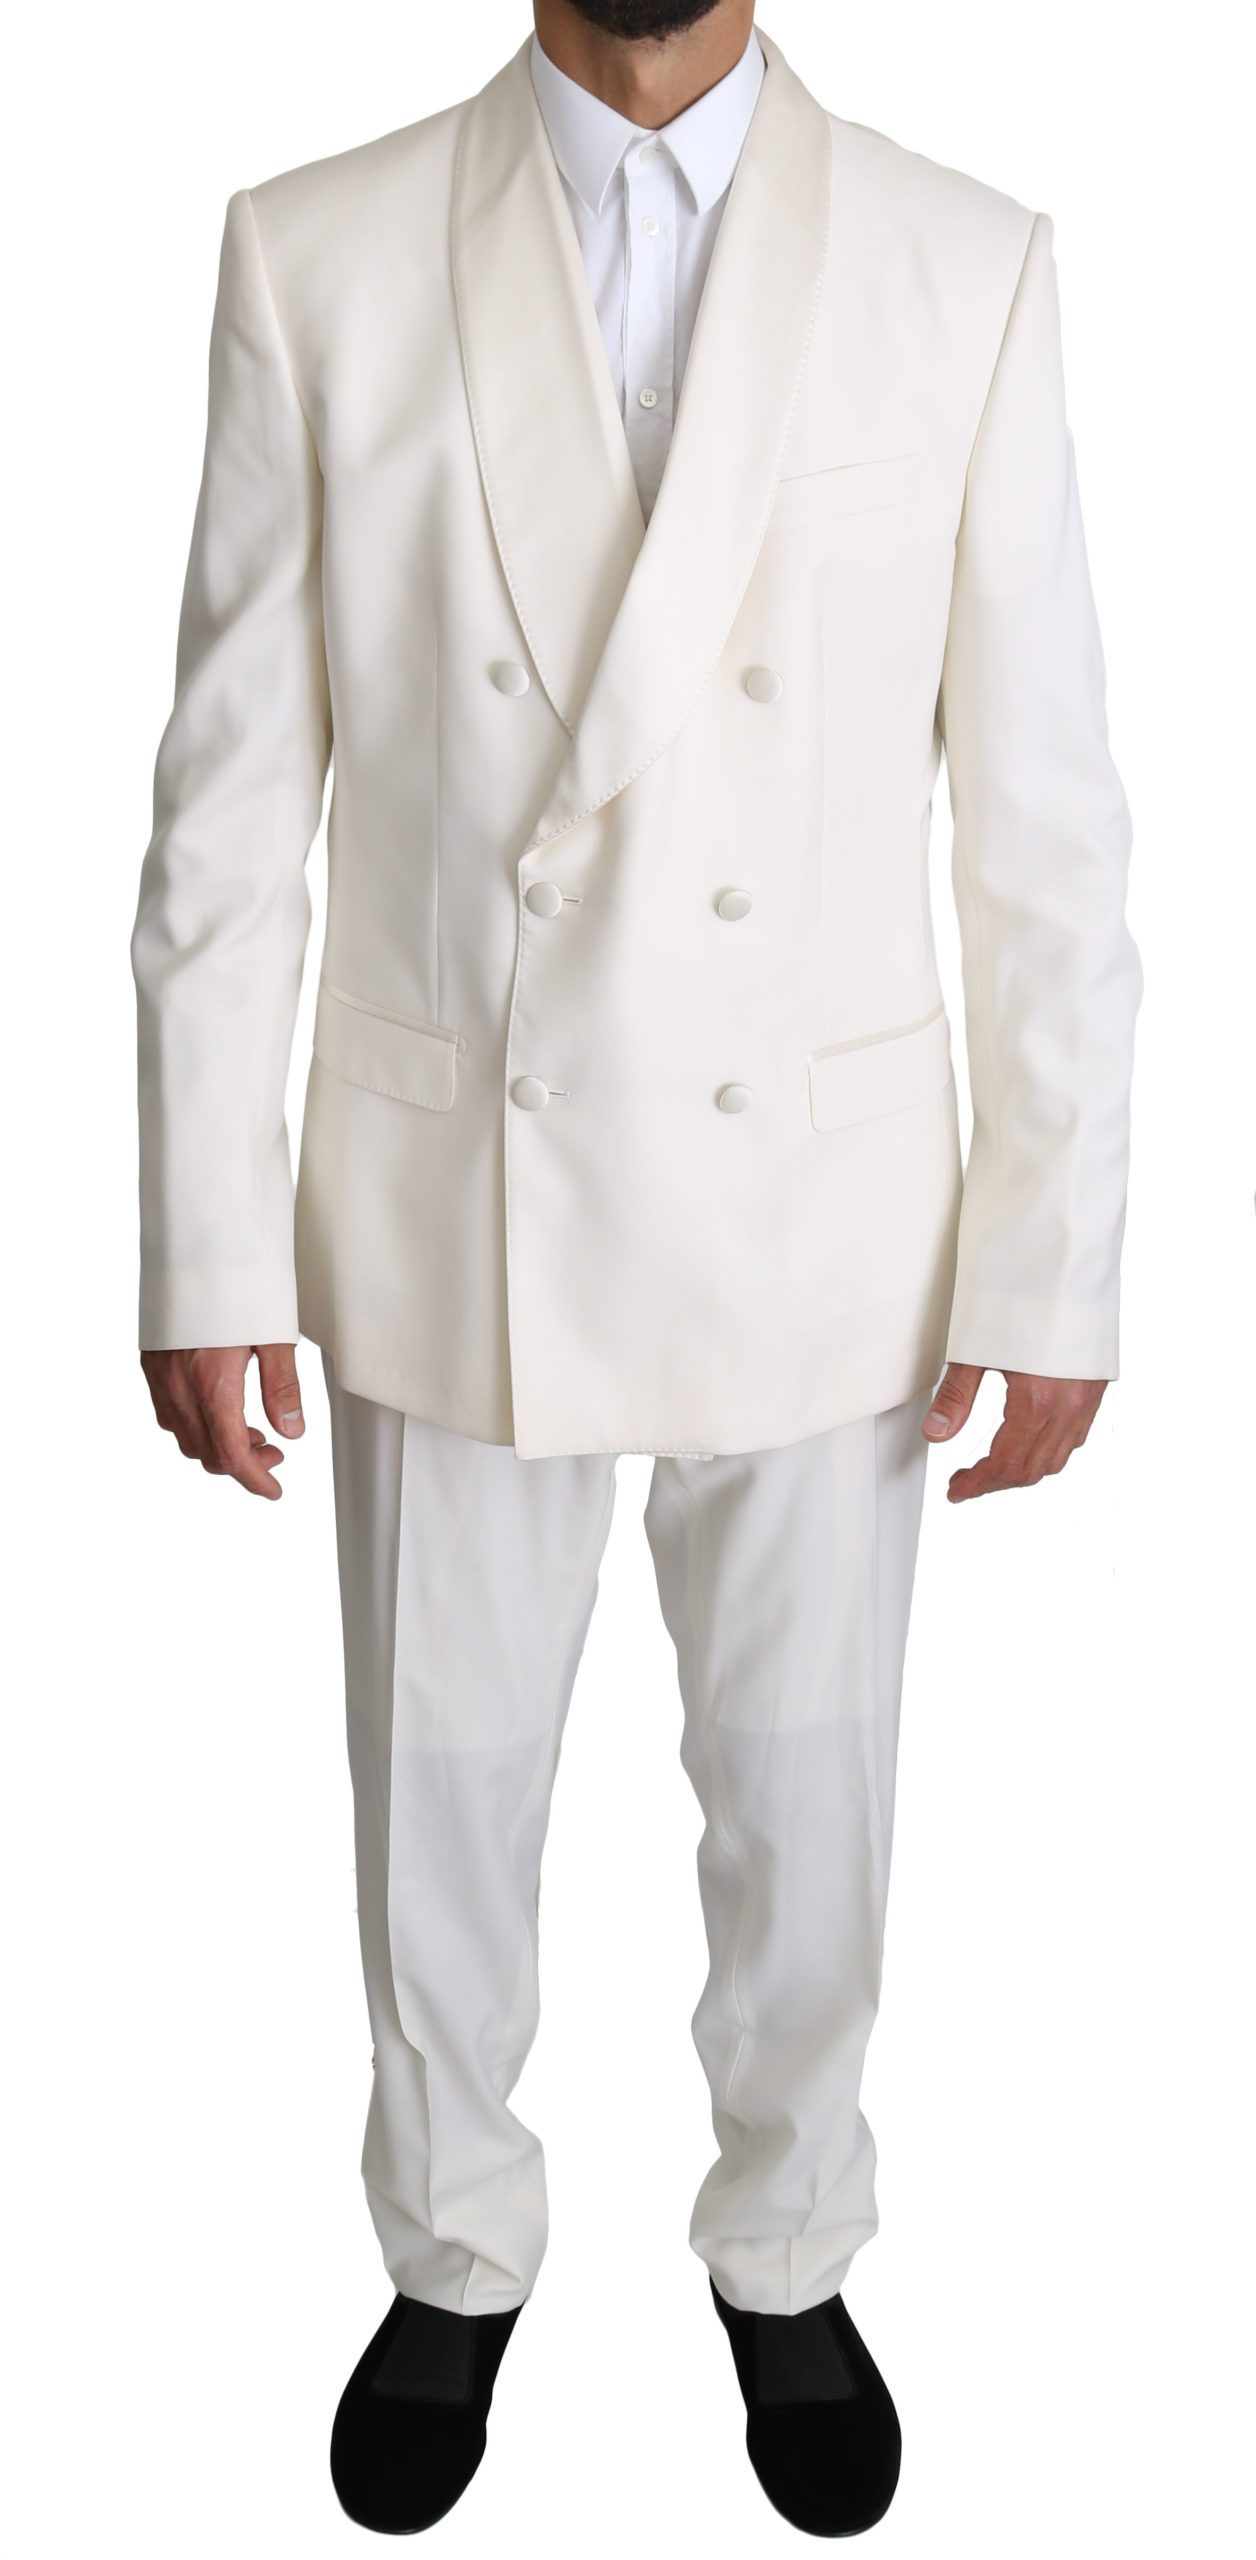 Dolce & Gabbana Men's Double Breasted 3 Piece MARTINI Suit White KOS1522 - IT54 | XL